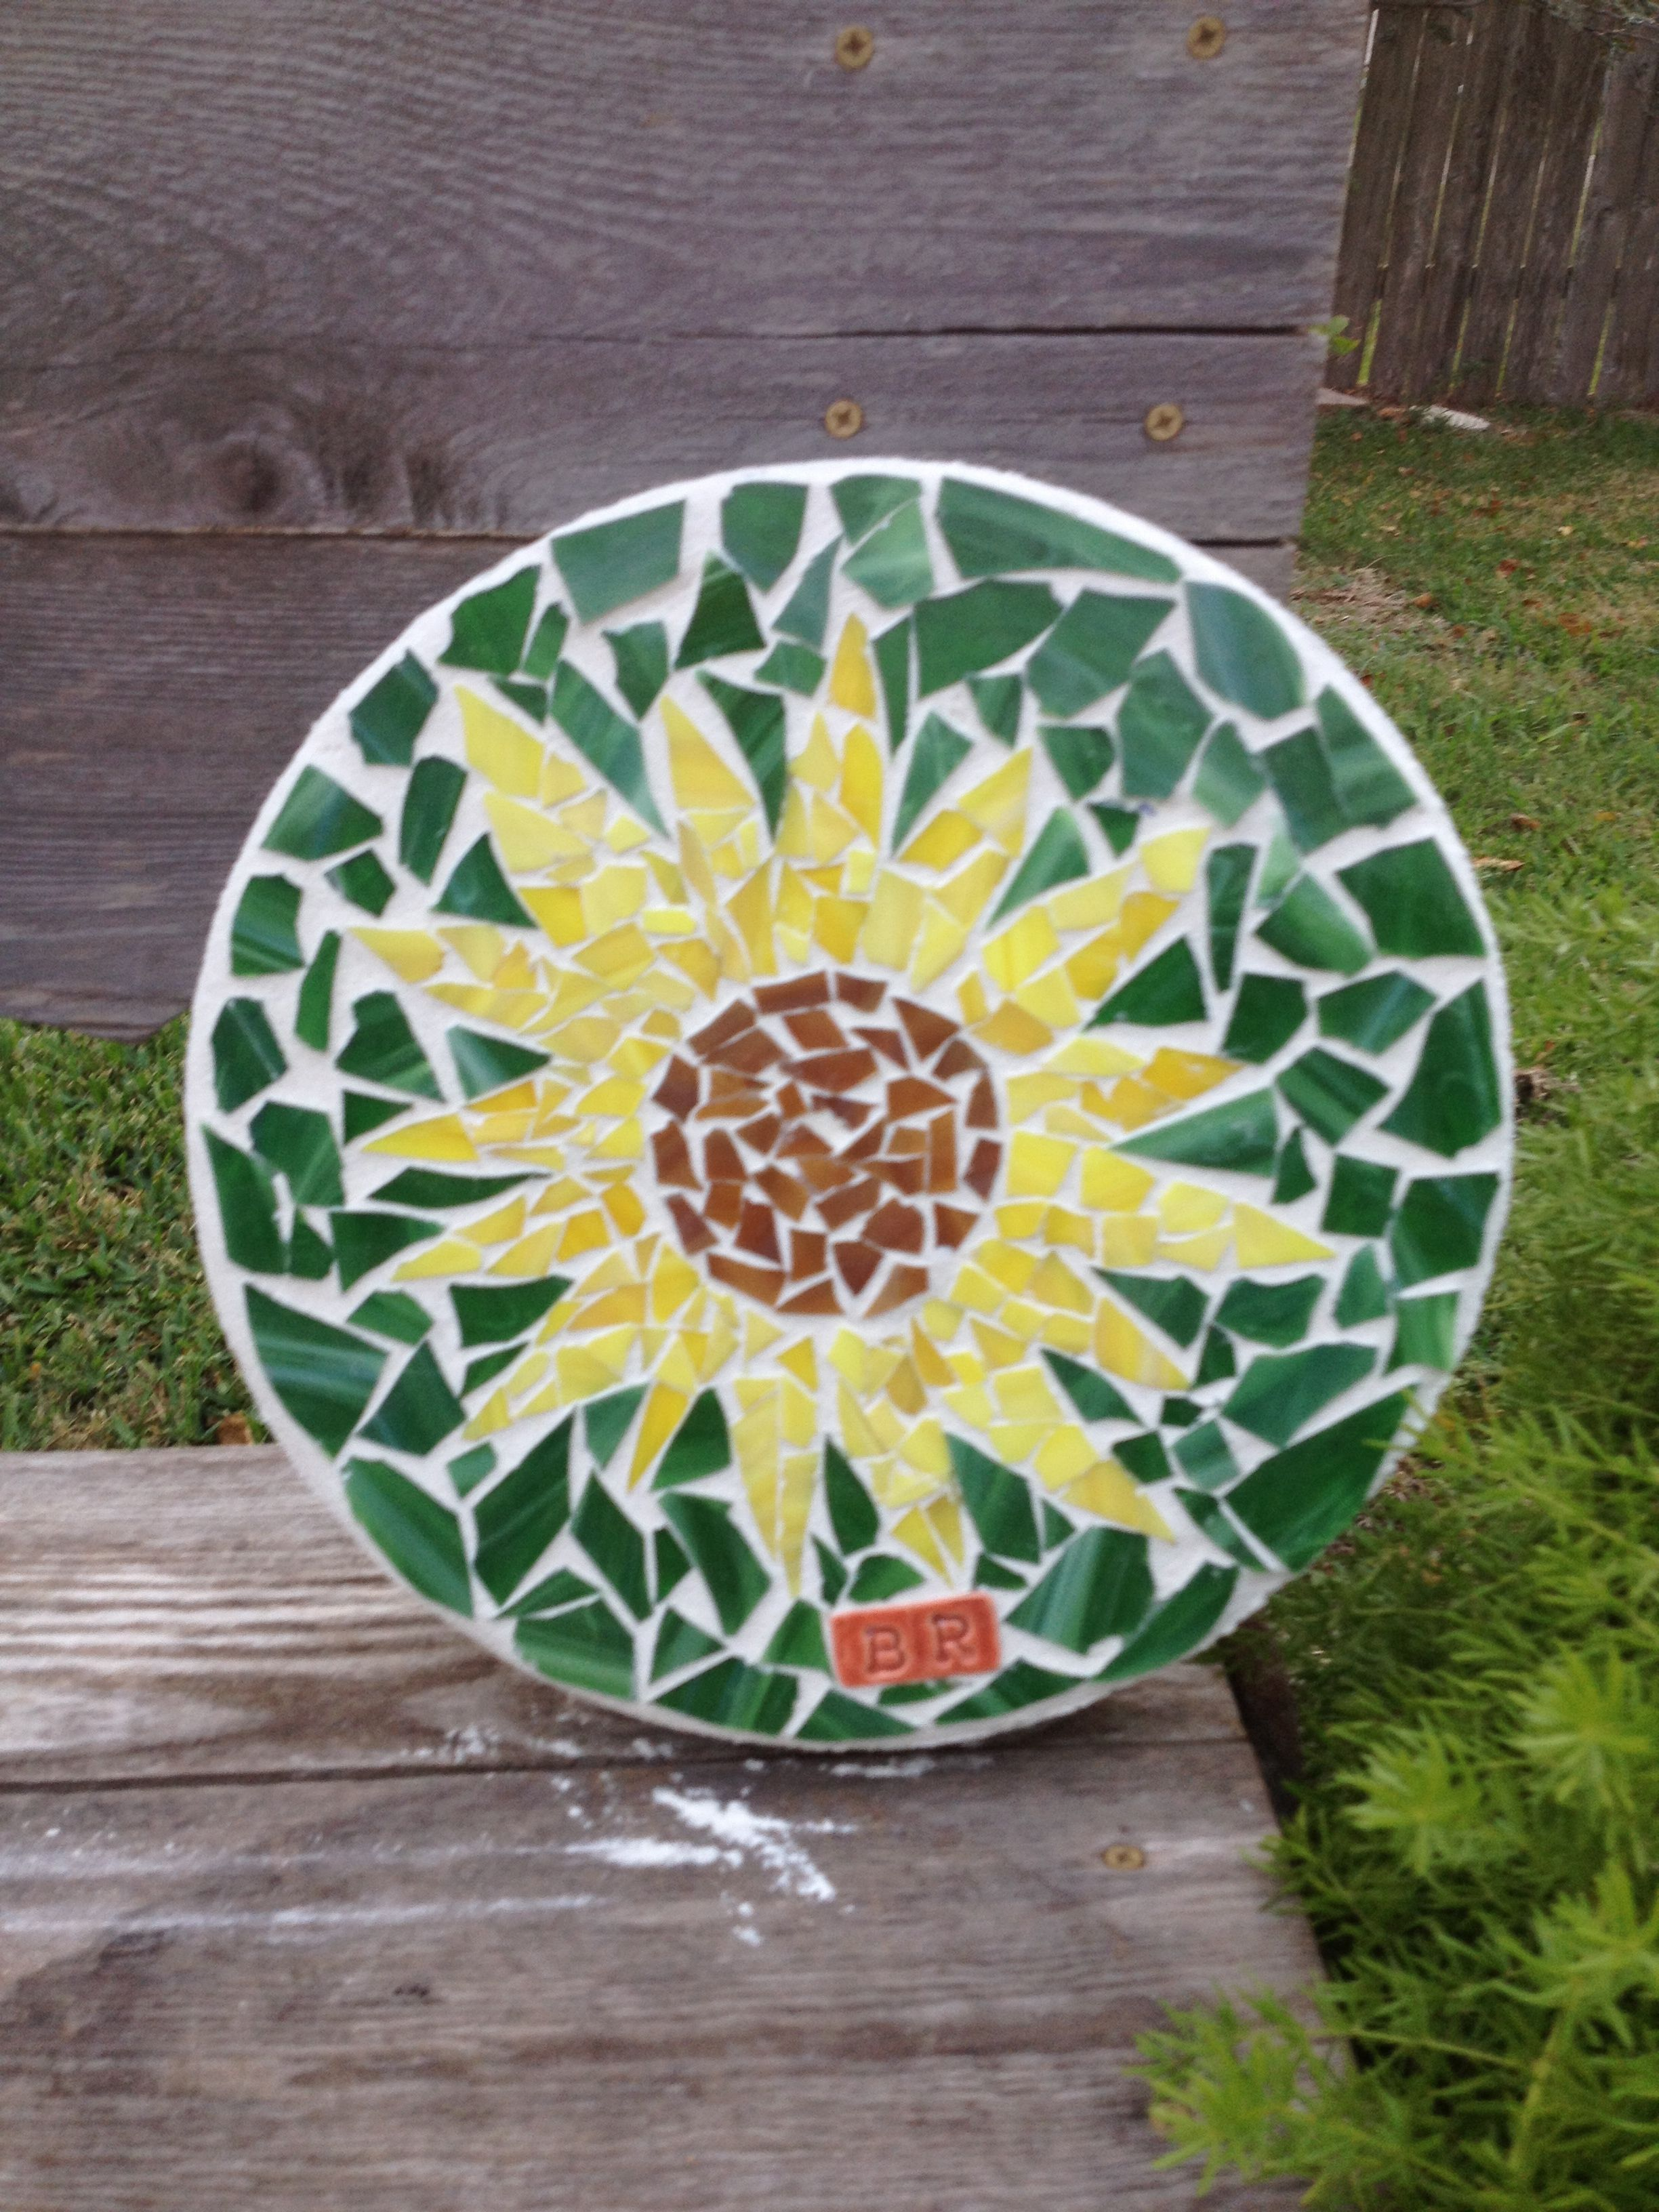 12 Inch Round Mosaic Stepping Stone By Brenda Rose Edna Texas Sunflower Mosaic Garden Art Mosaic Stepping Stone Mosaic Art